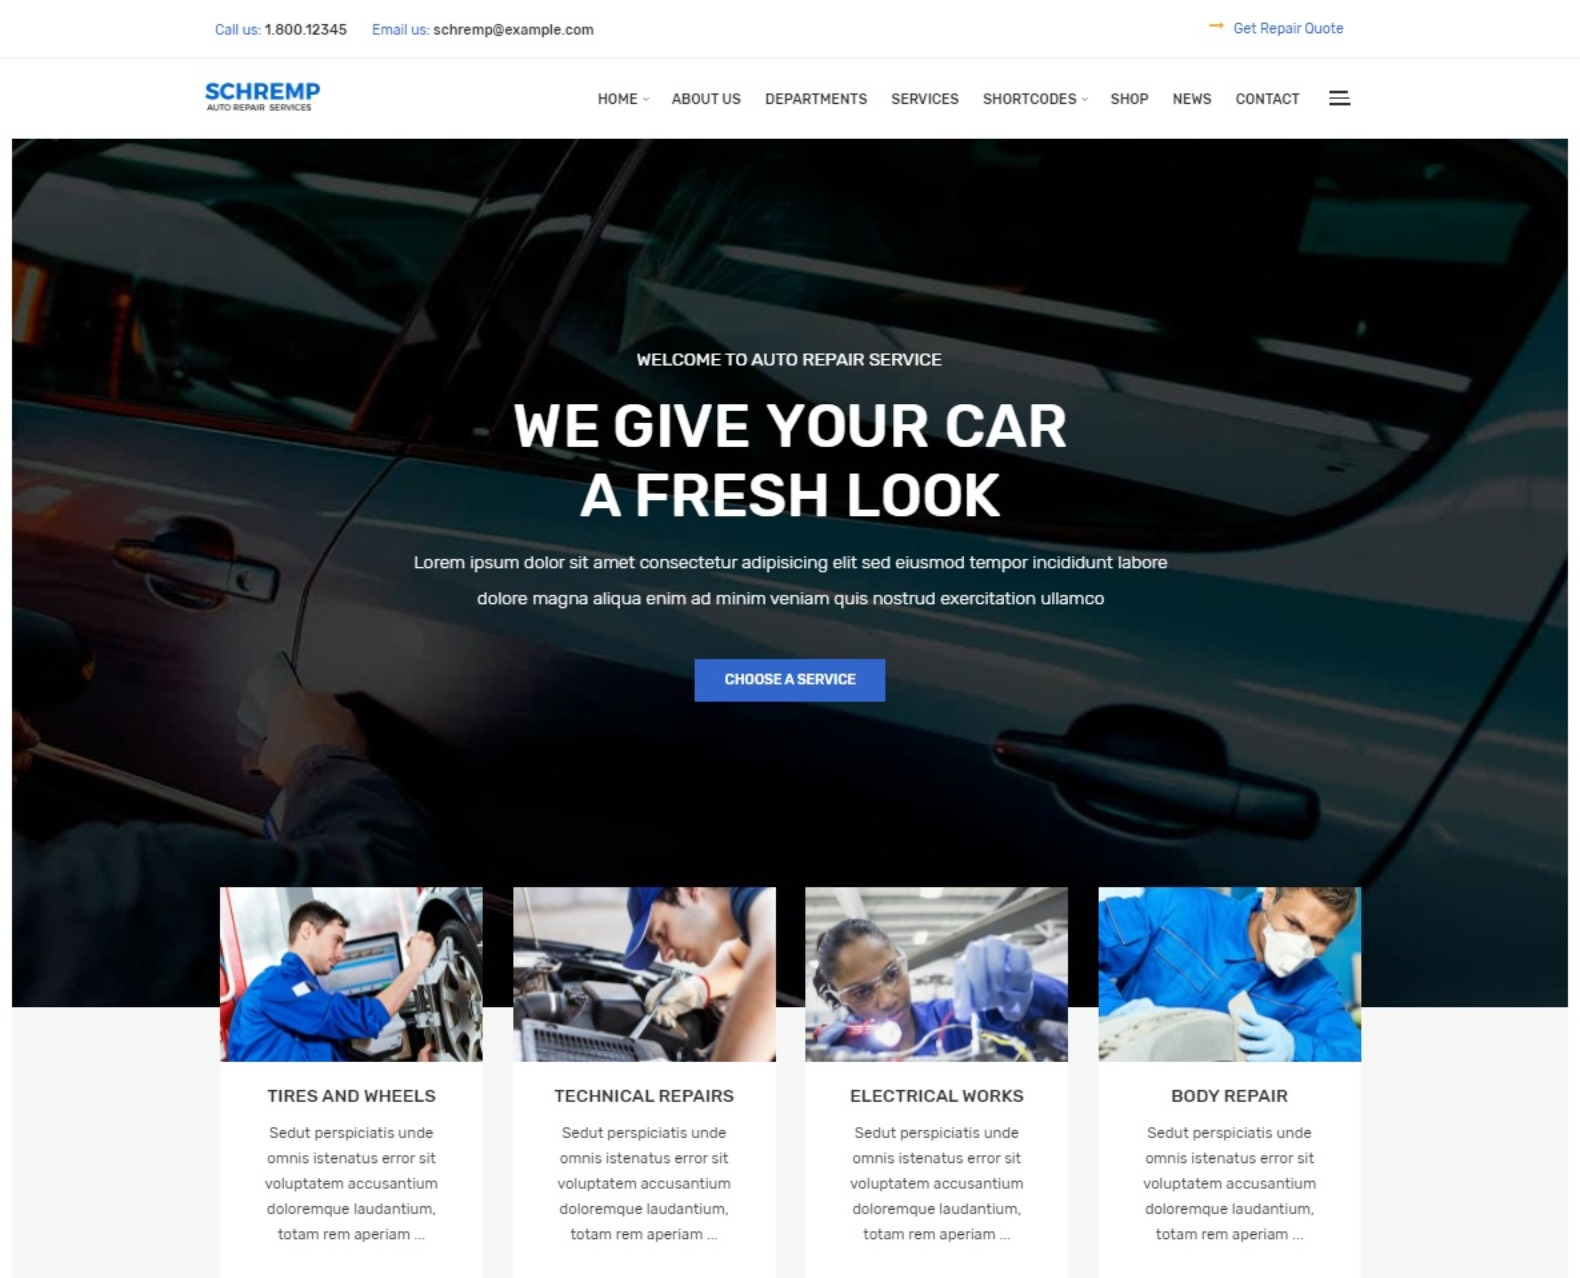 Schremp Auto Repair Services WordPress Theme